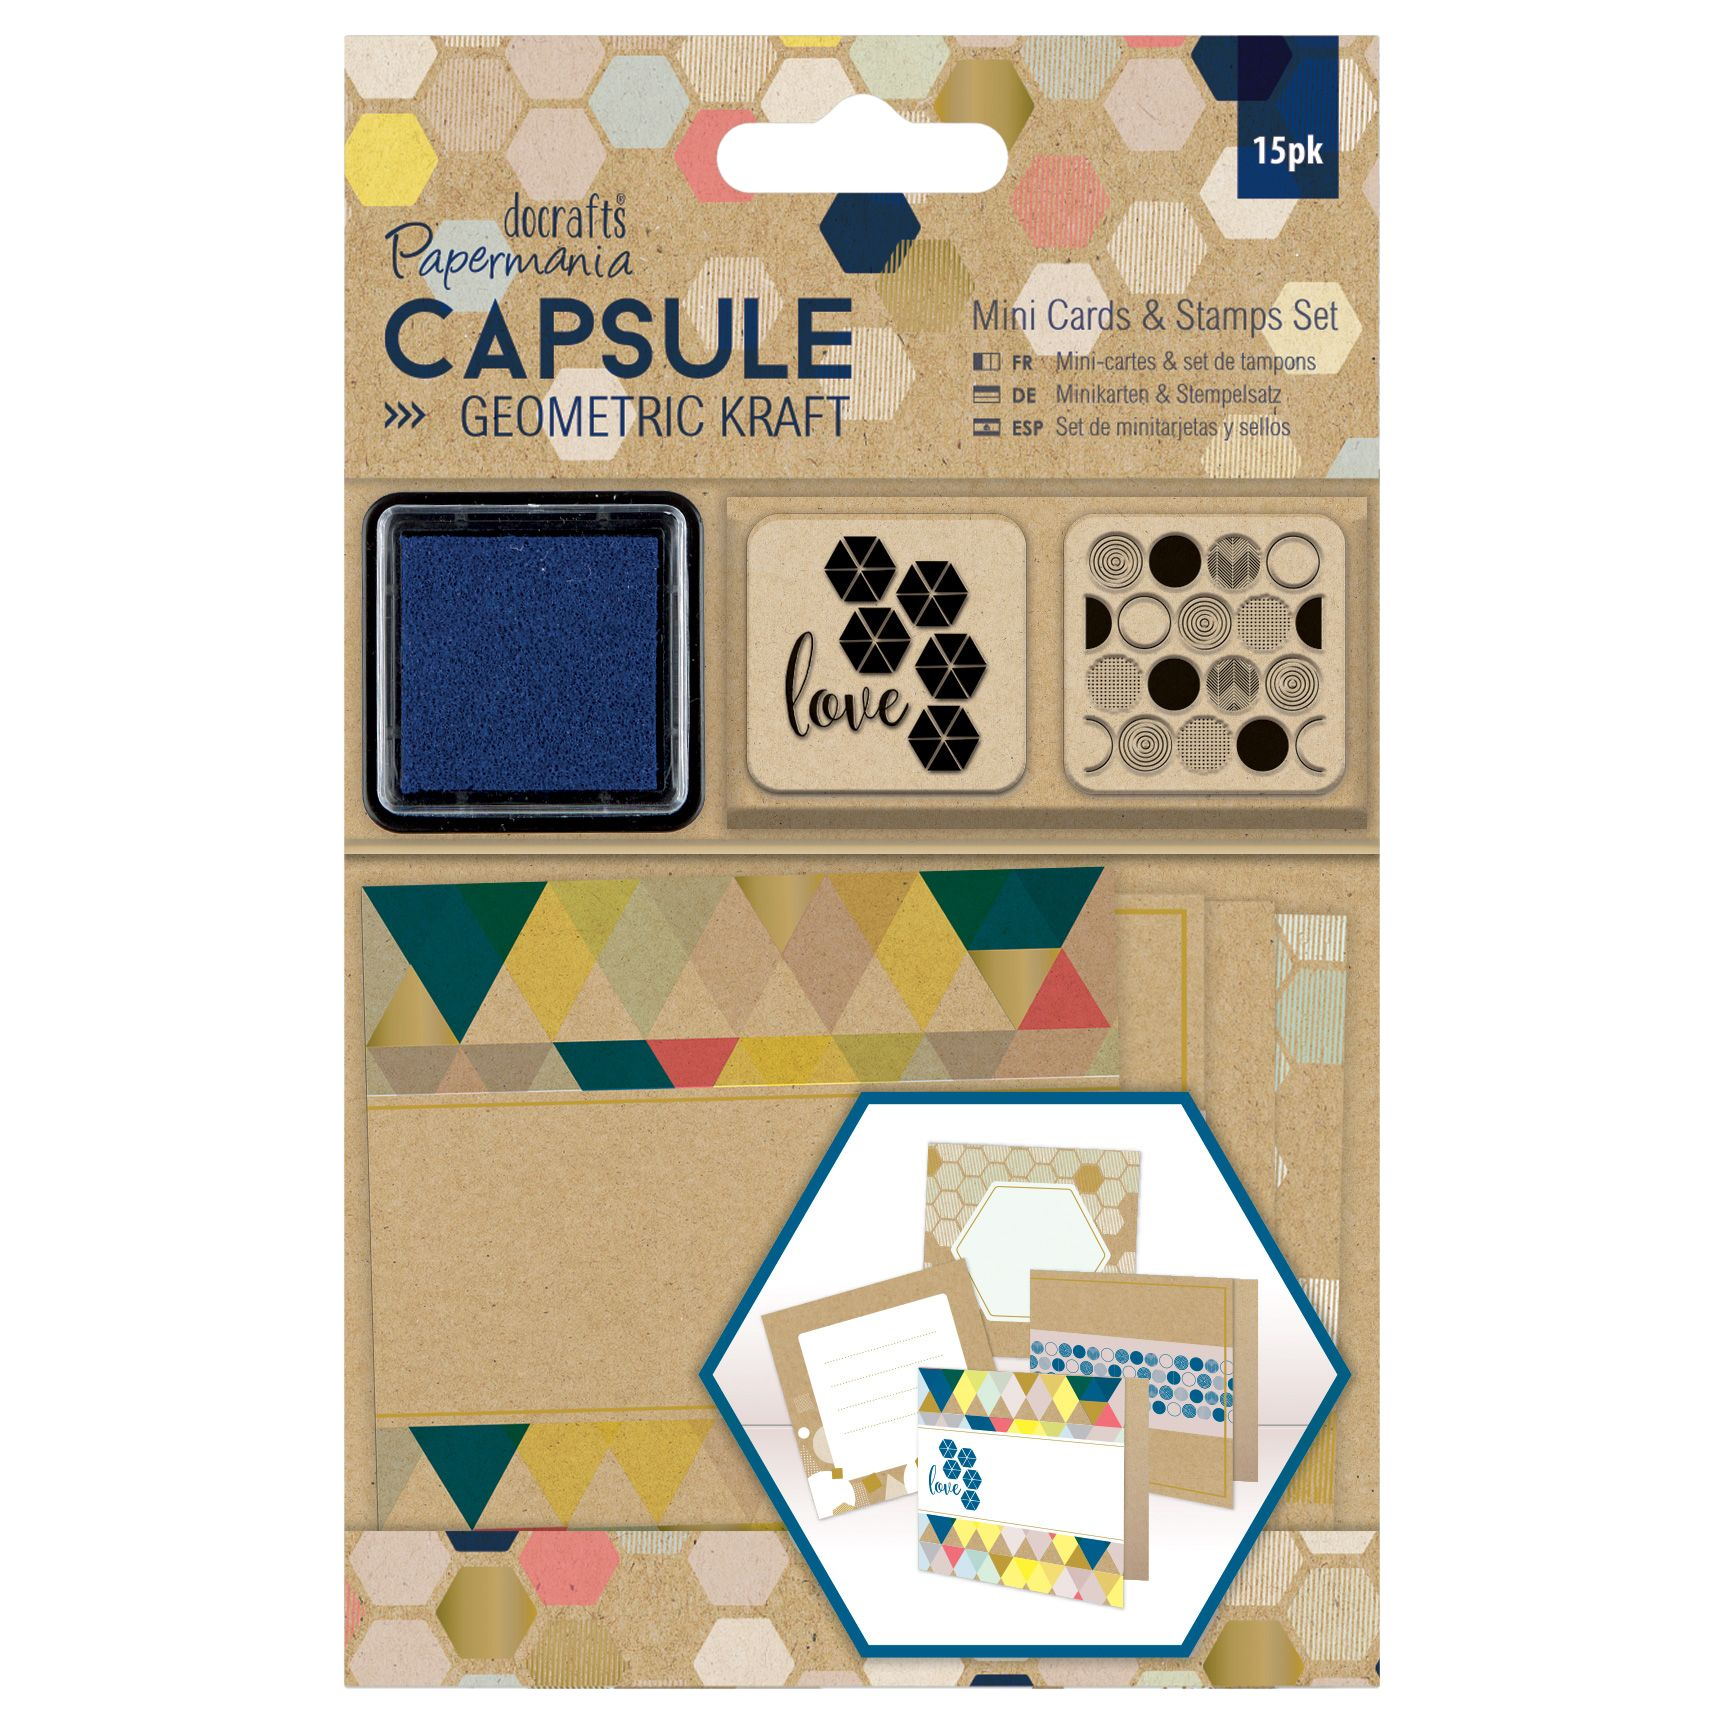 DoCrafts Docrafts Mini Cards and Stamps Kit, Pack of 15